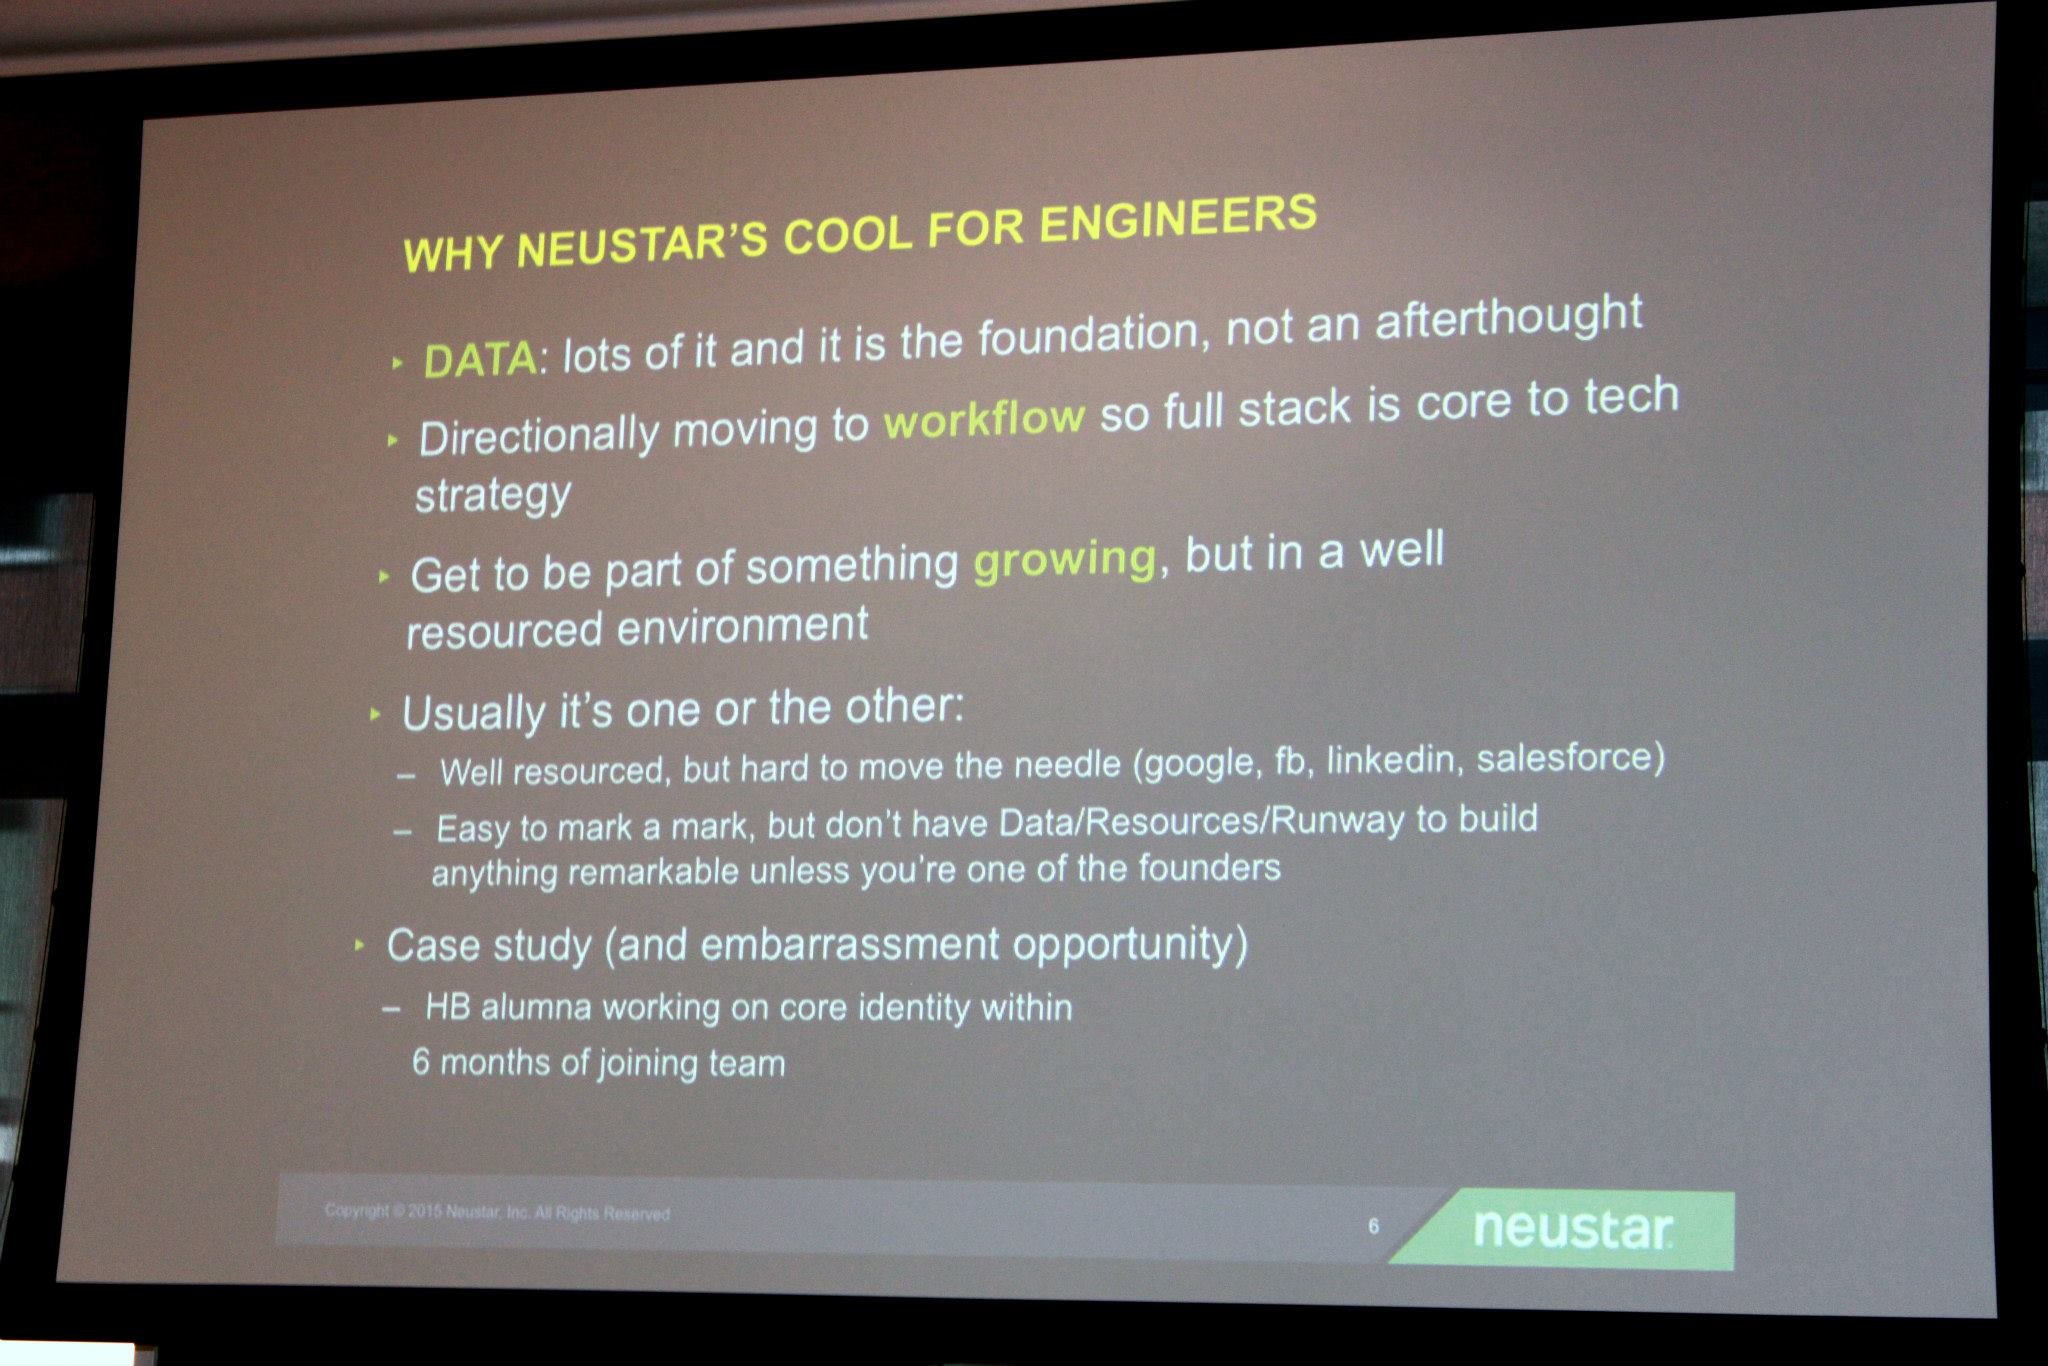 Why work at Neustar